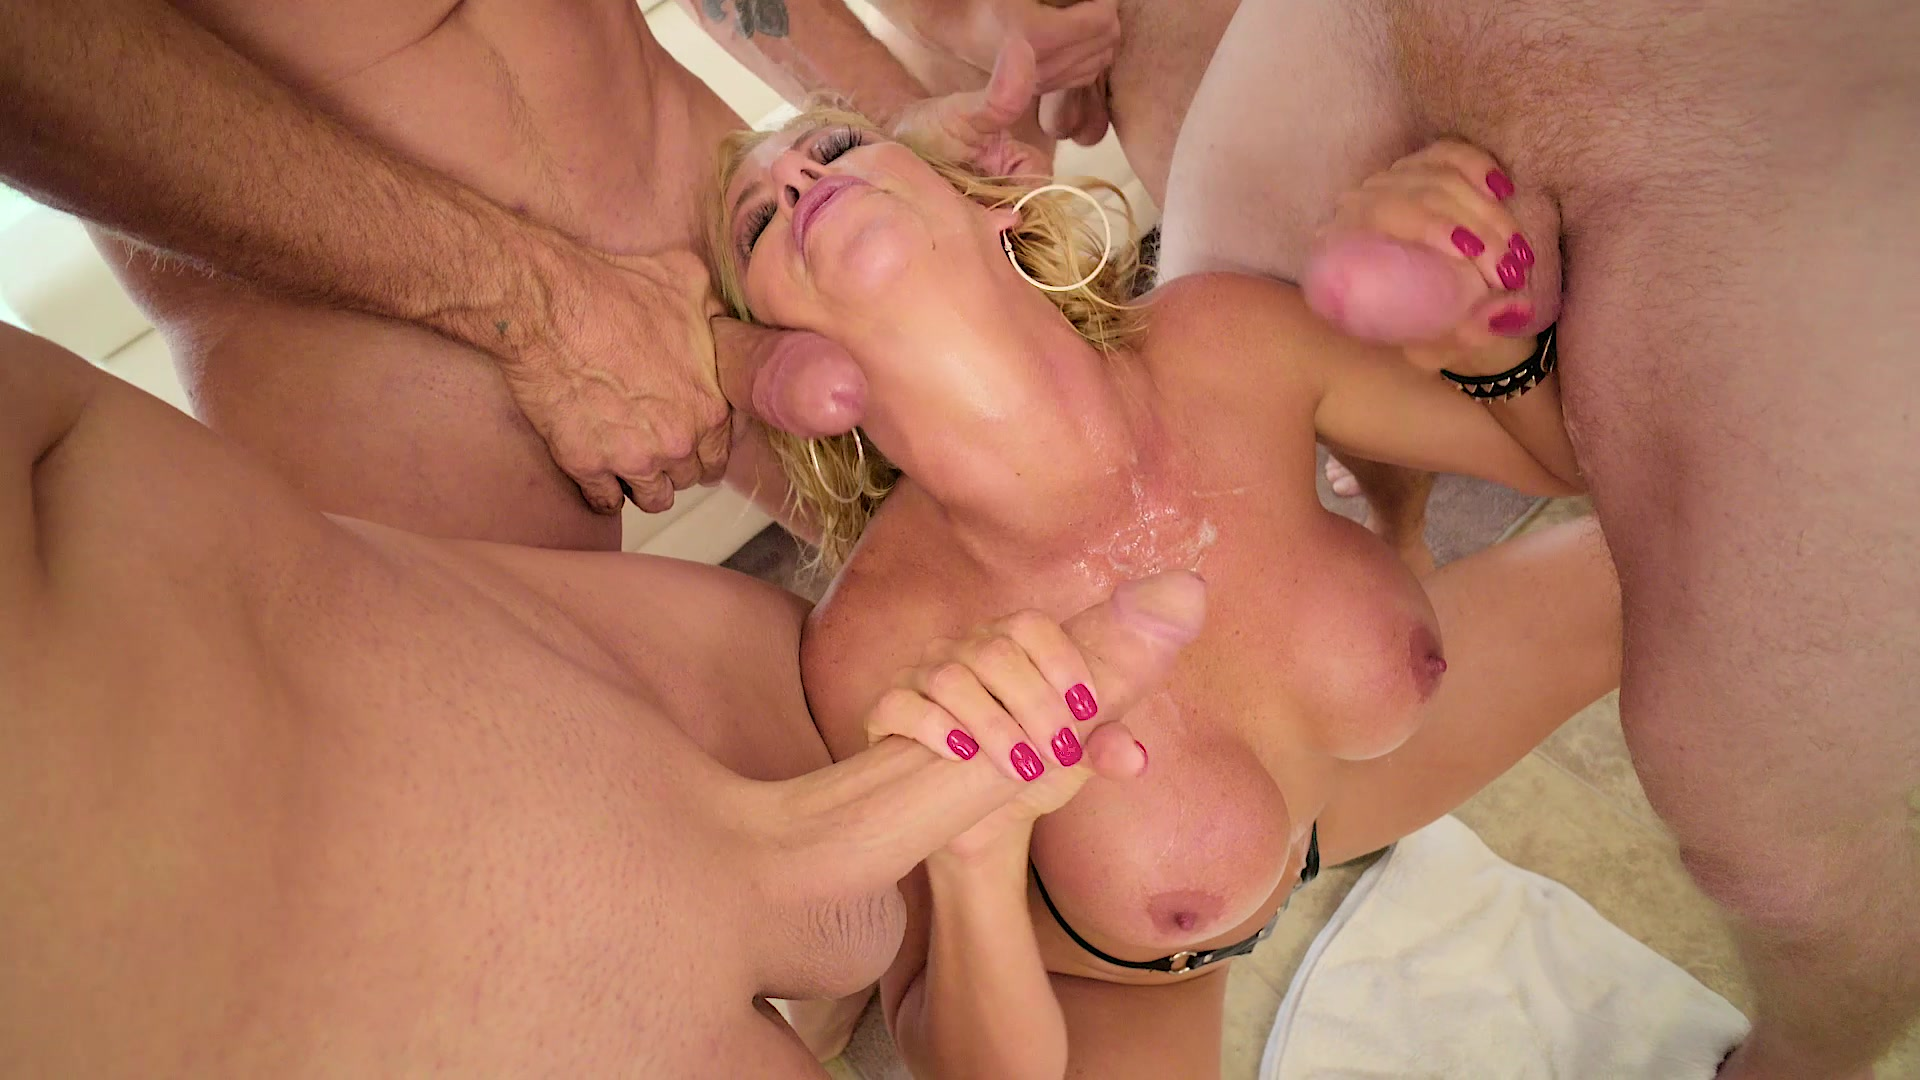 Alexis Fawx Wet Food Porn wet food 8 streaming or download video on demand   (2016